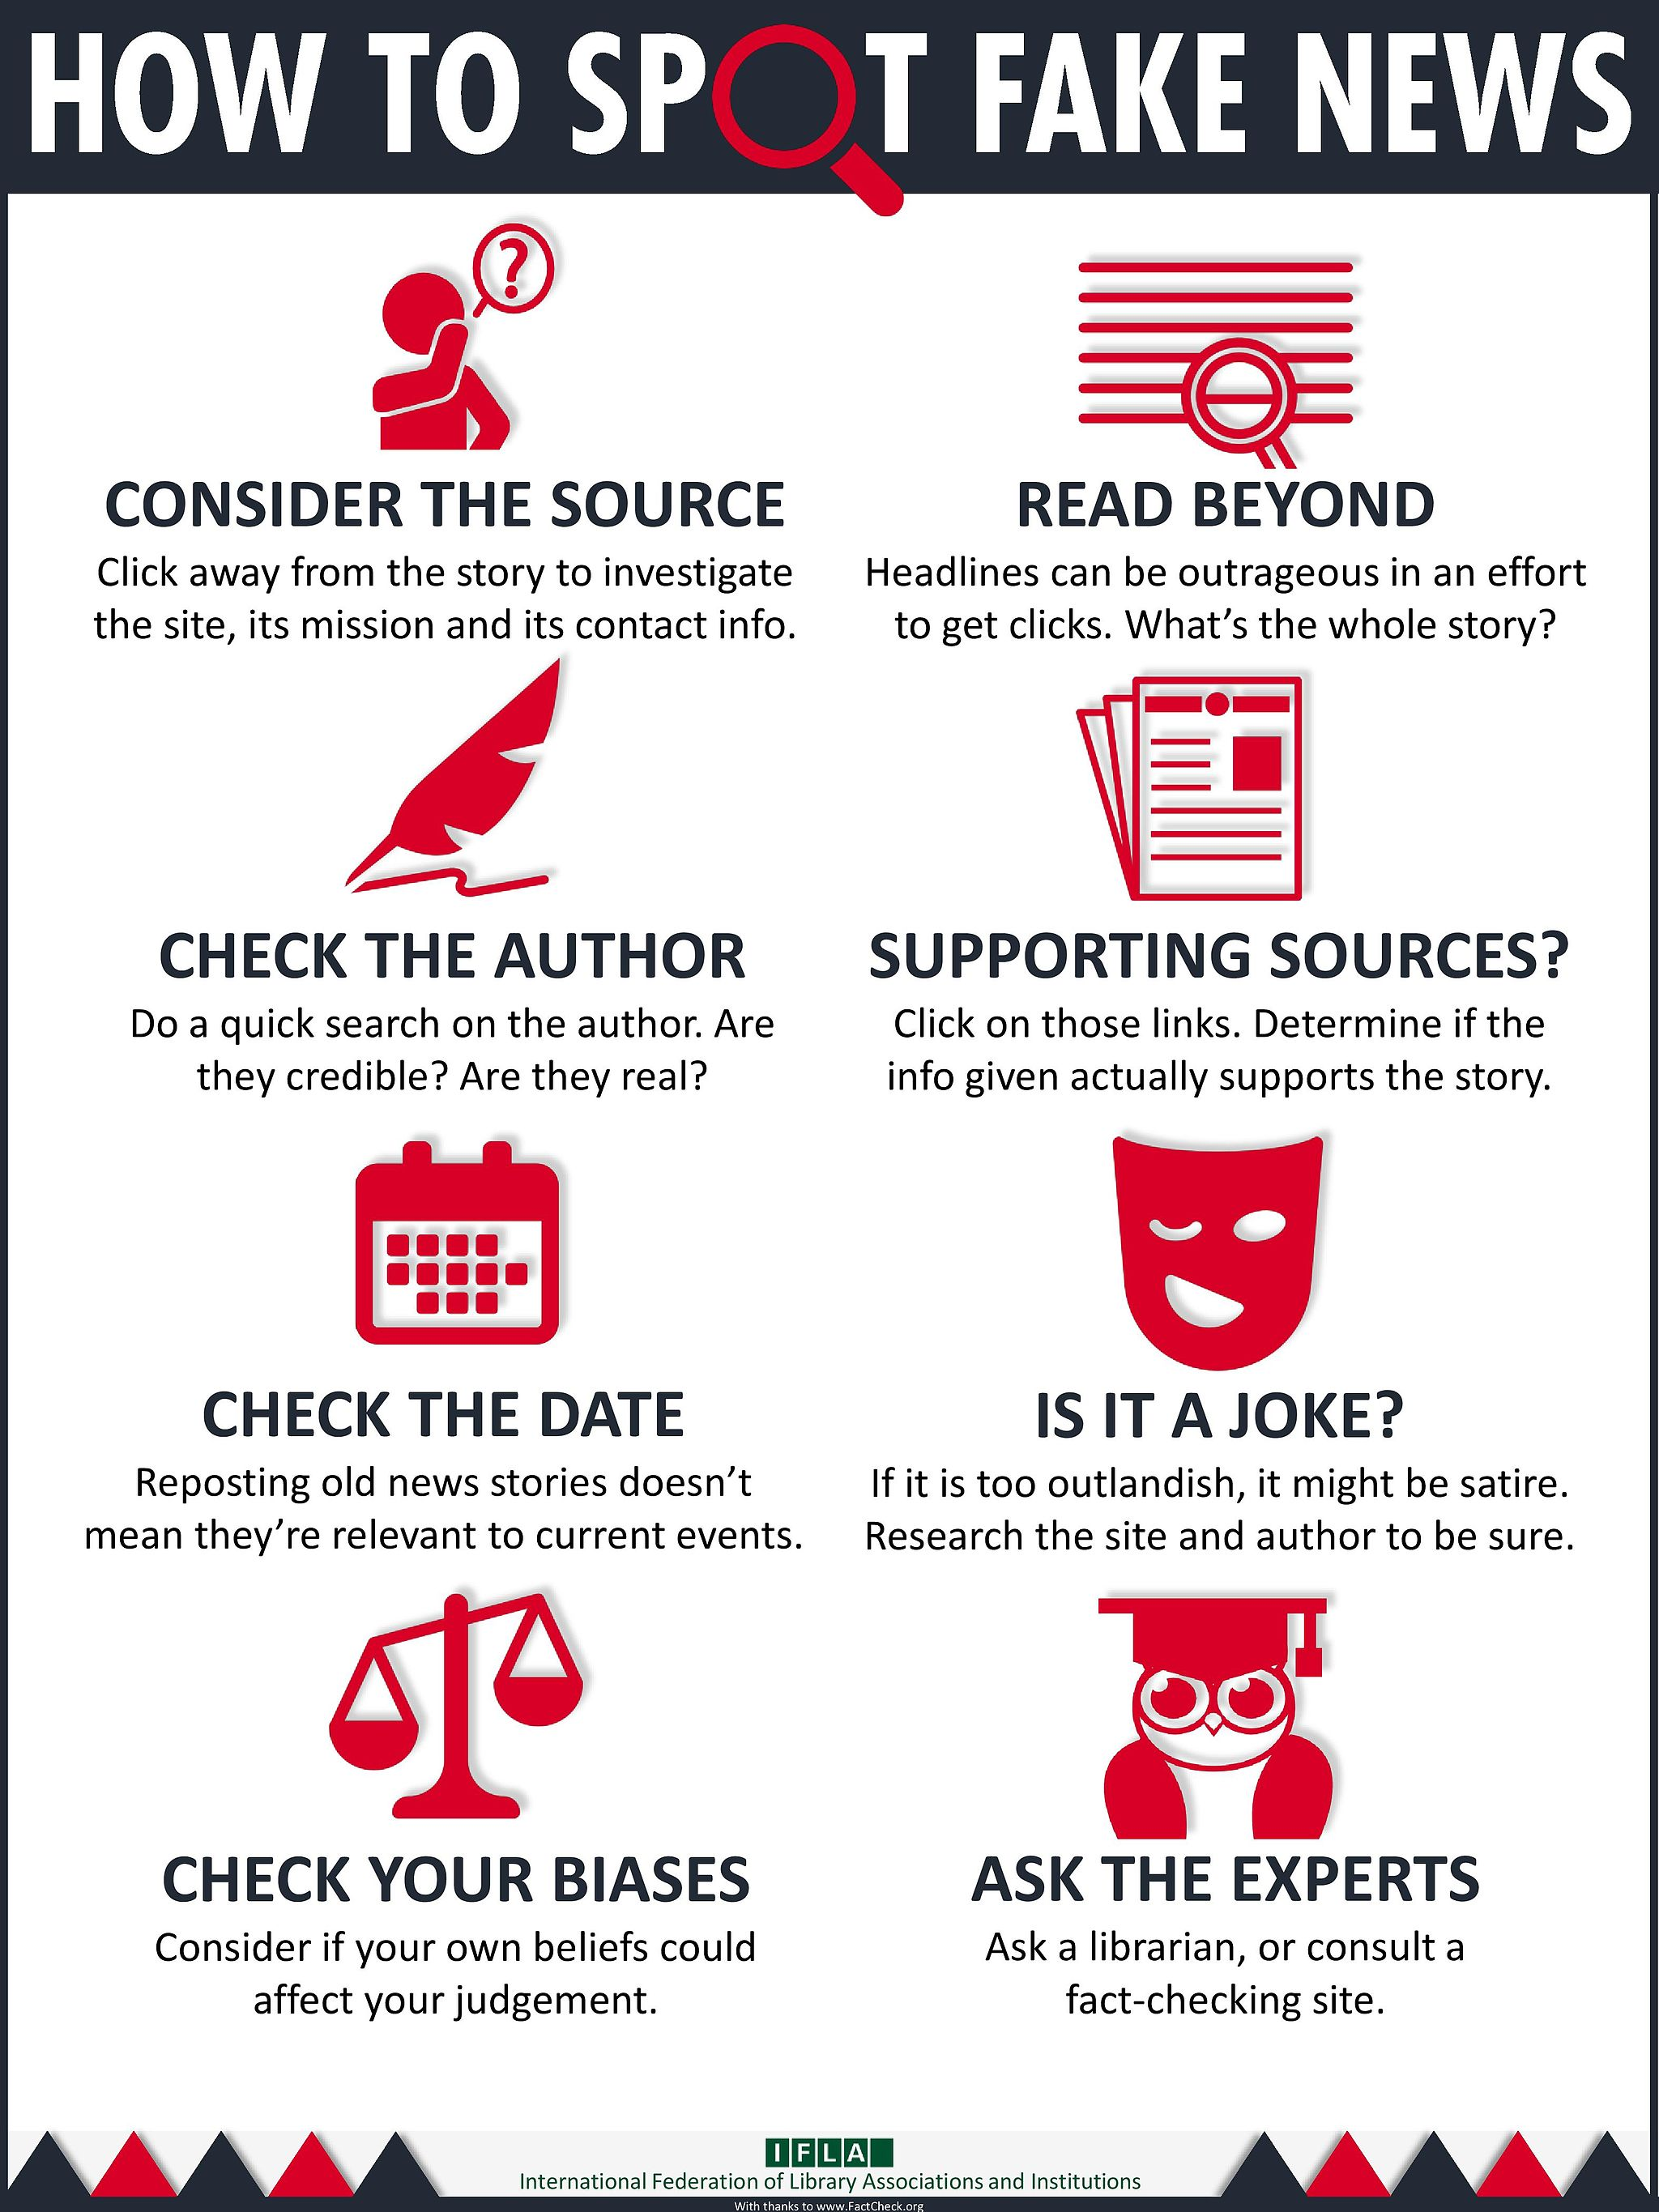 Infographic from IFLA on How To Spot Fake News: Consider the Source (Click away from the story to investigate the site, its mission and its contact info). Read Beyond (Headlines can be outrageous in an effort to get clicks. What's the whole story?). Check the Author (Do a quick search on the author. Are they credible? Are they real?). Supporting Sources? (Click on those links. Determine if the info given actually supports the story.). Check the Date (Reposting old news stories doesn't mean they're relevant to current events.). Is It a Joke? (If it's too outlandish, it might be satire. Research the site and author to be sure.). Check Your Biases (Consider if your own beliefs could affect your judgement.). Ask the Experts (Ask a librarian, or consult a fact-checking site.).